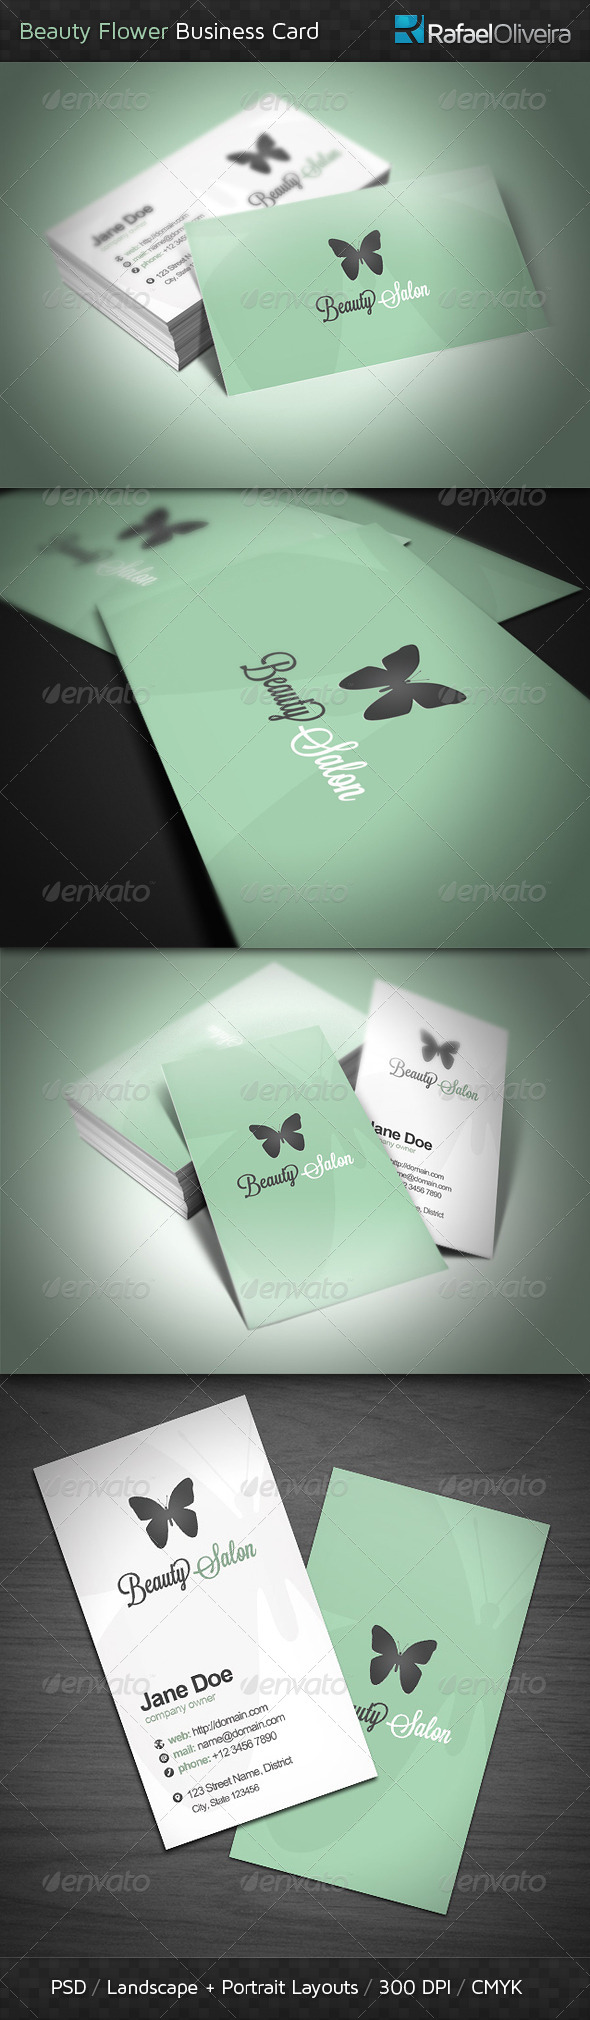 GraphicRiver Beauty Flower Business Card 4442711